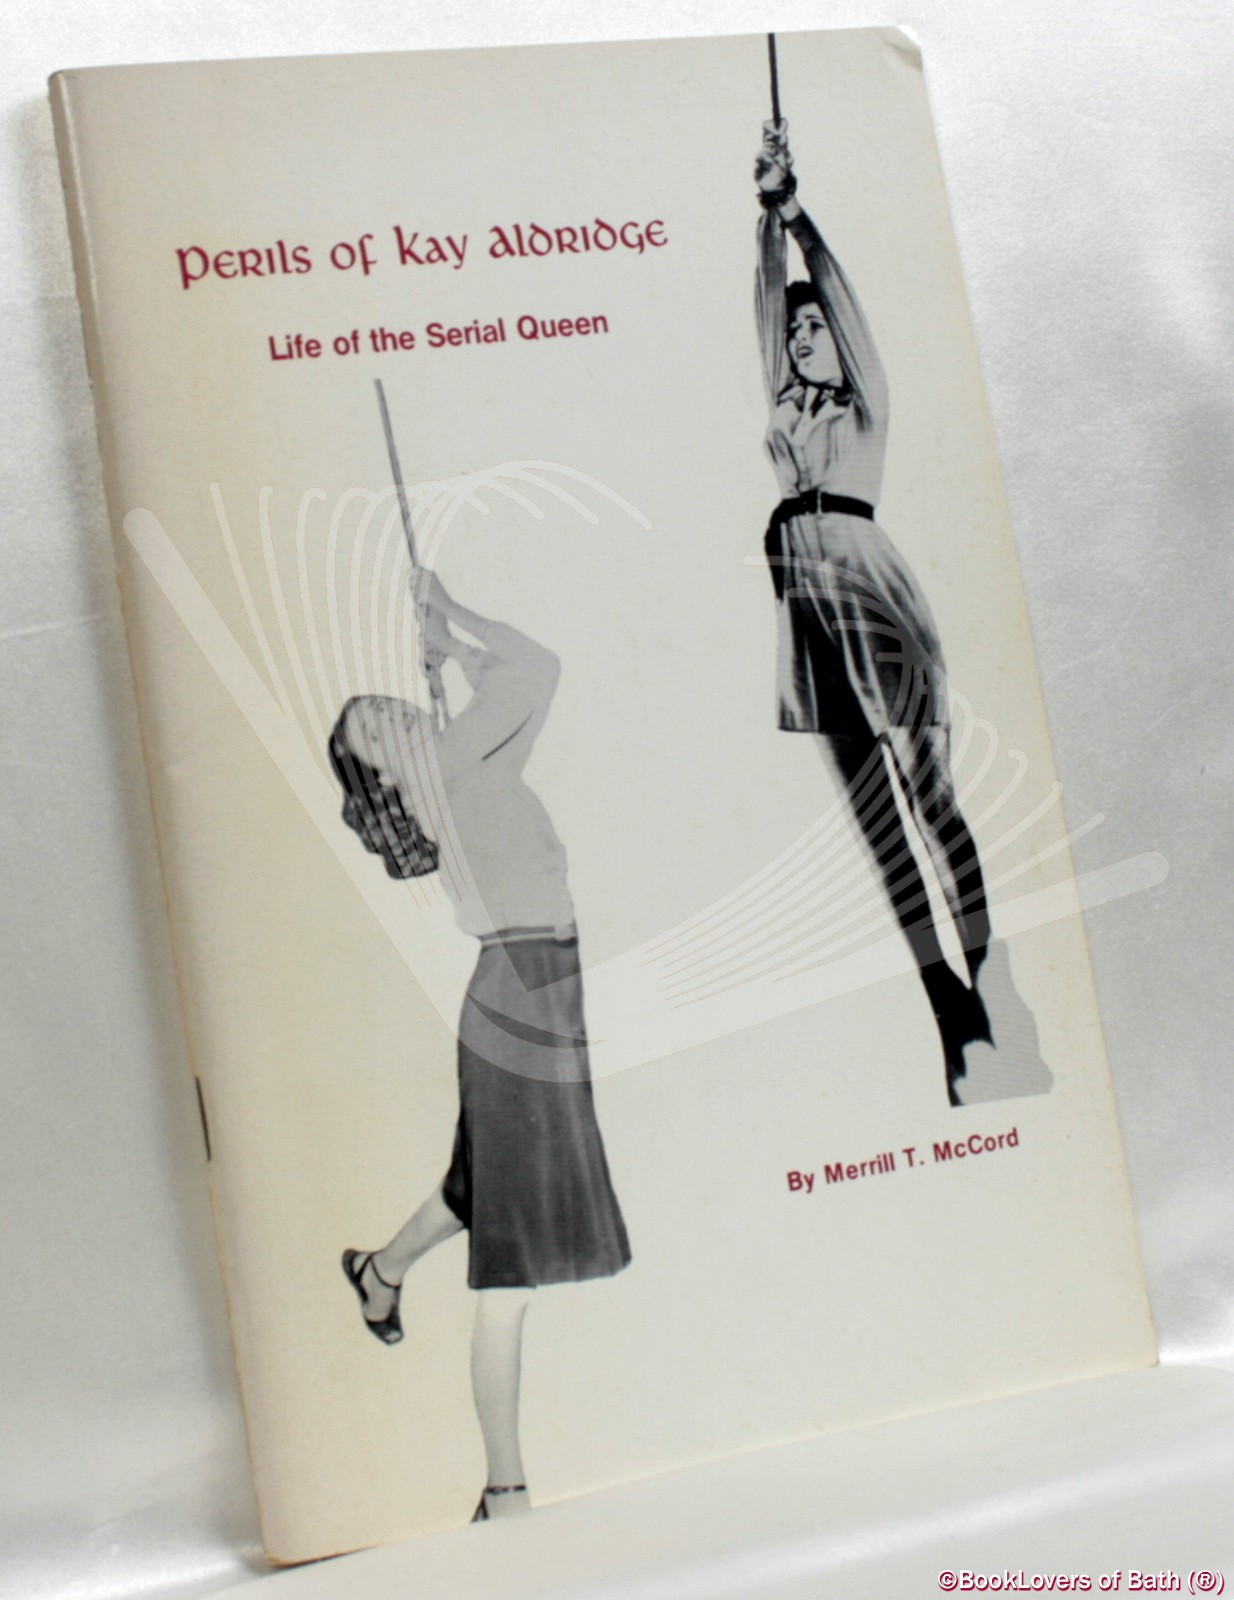 Perils of Kay Aldridge: Life of the Serial Queen - Merrill T. Mccord